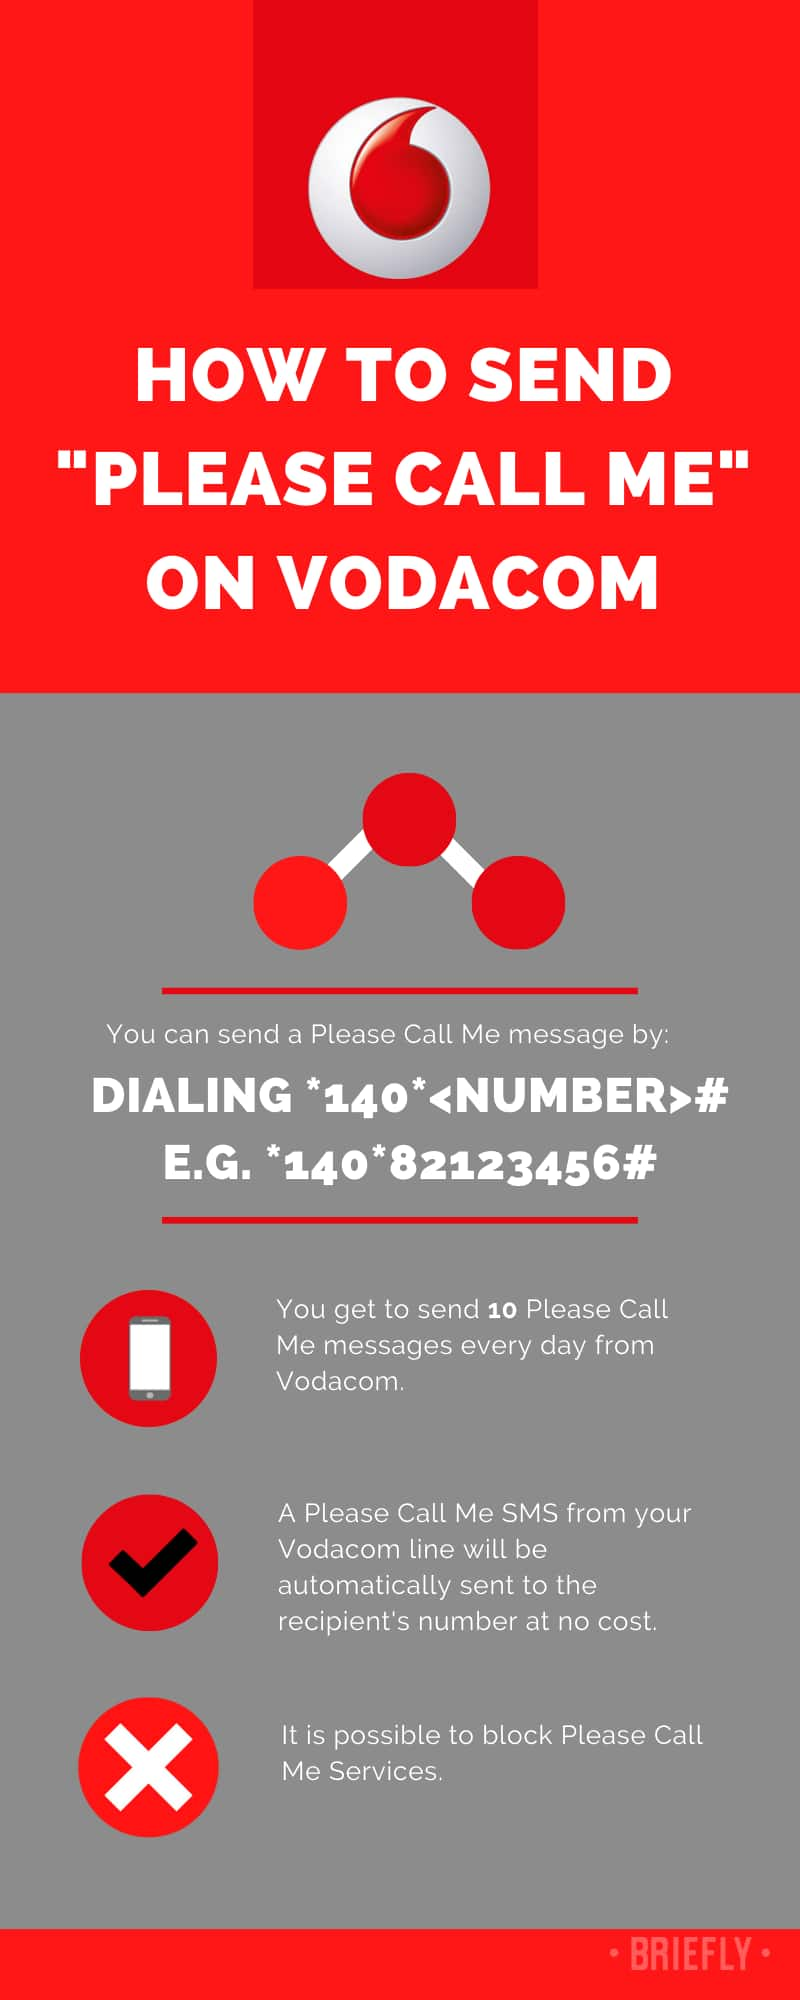 How to send a Please Call Me on Vodacom South Africa